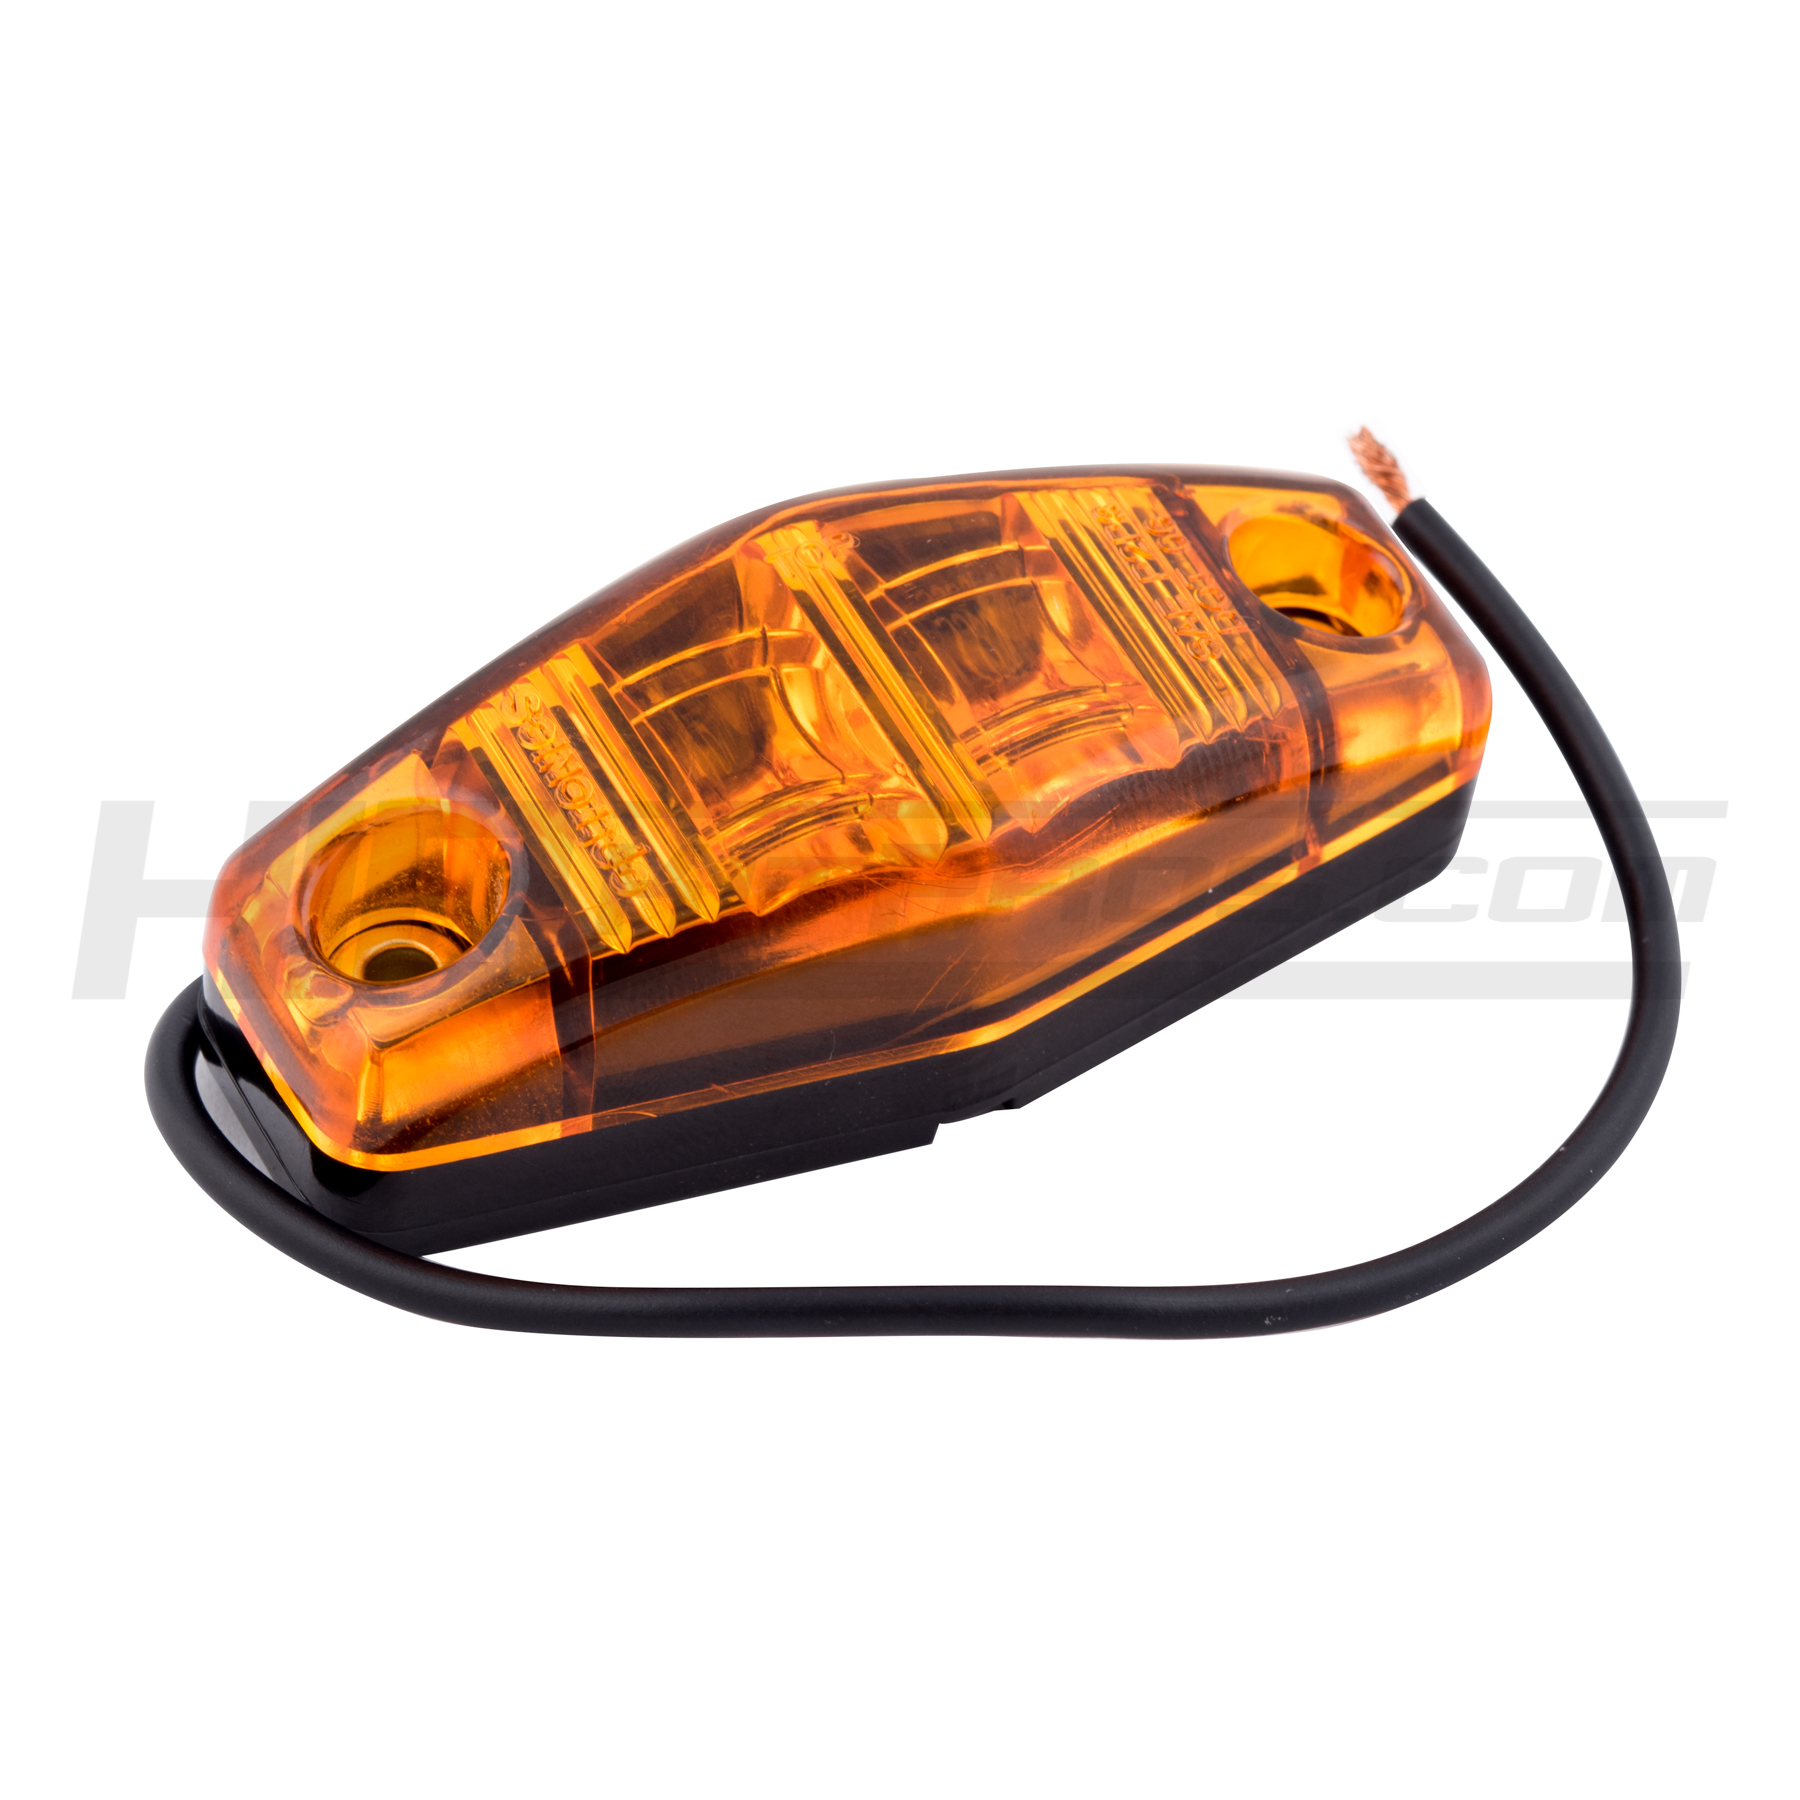 Amber Led Truck Trailer Running Marker Light Hid Kit Pros Replacement 12volt Dc Power Plug Optronics Accessories And Parts A